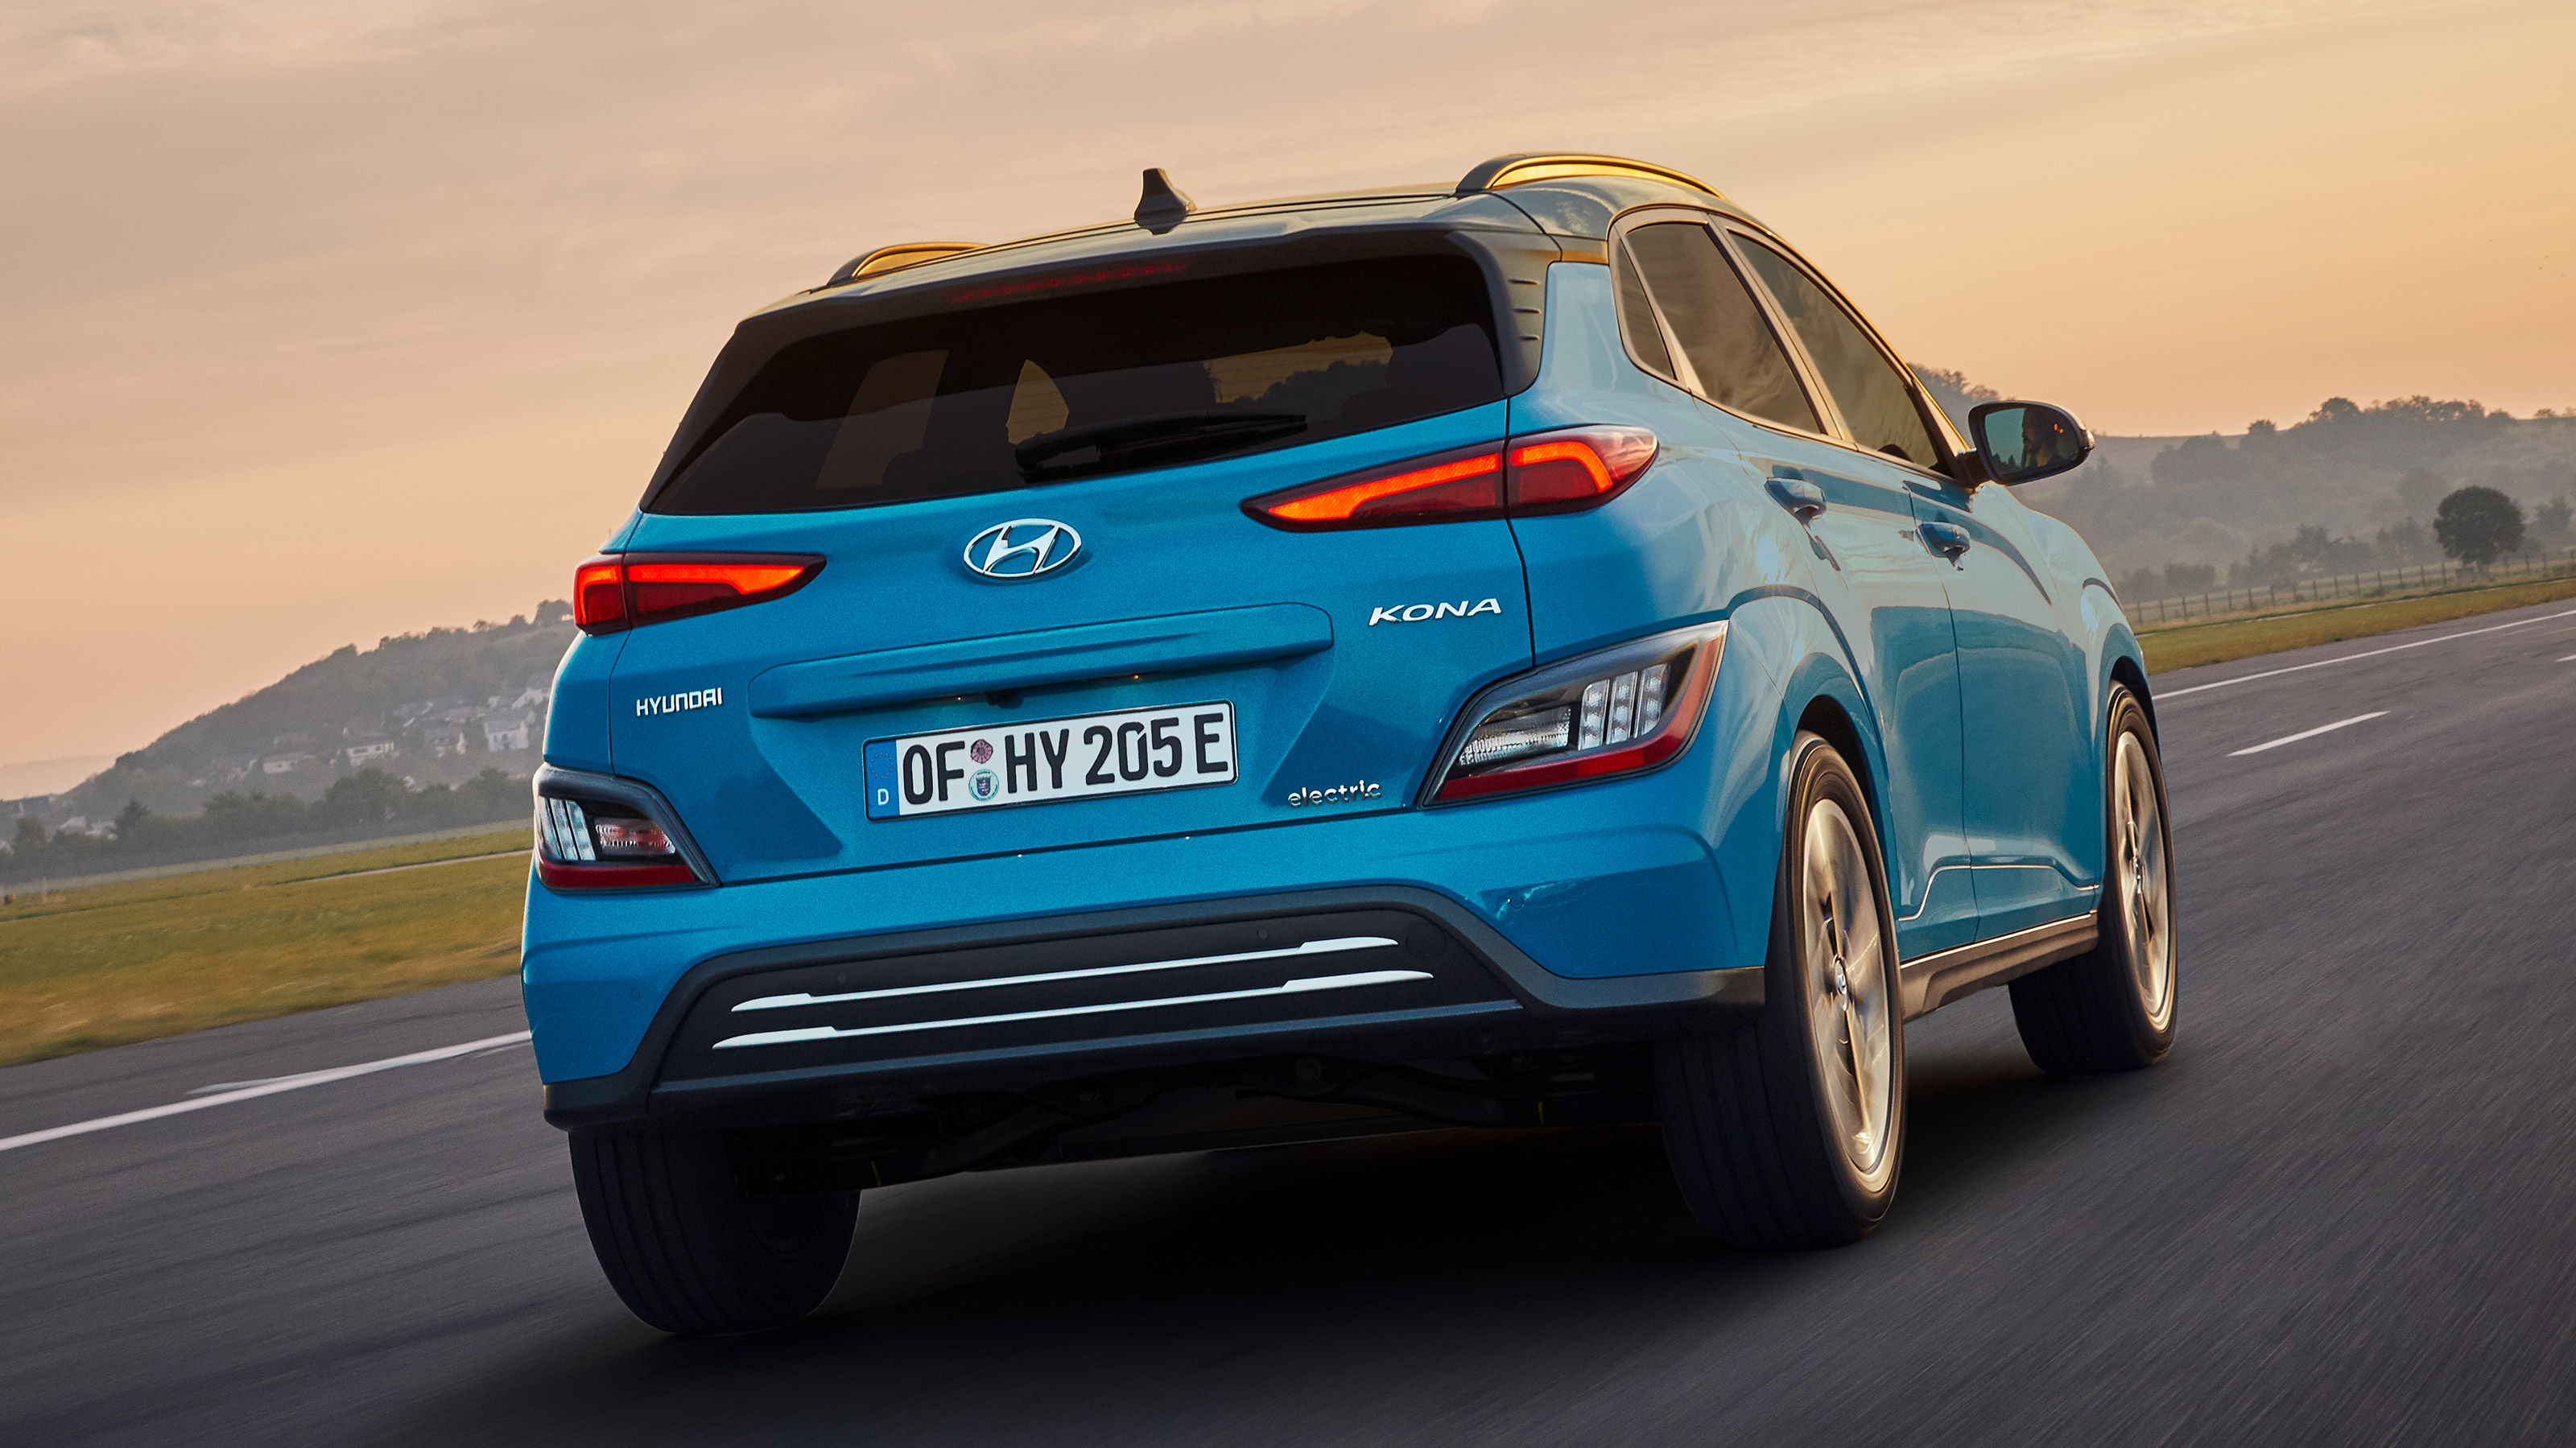 Hyundai Kona Electric Facelift Prices Specification And On Sale Date Drivingelectric